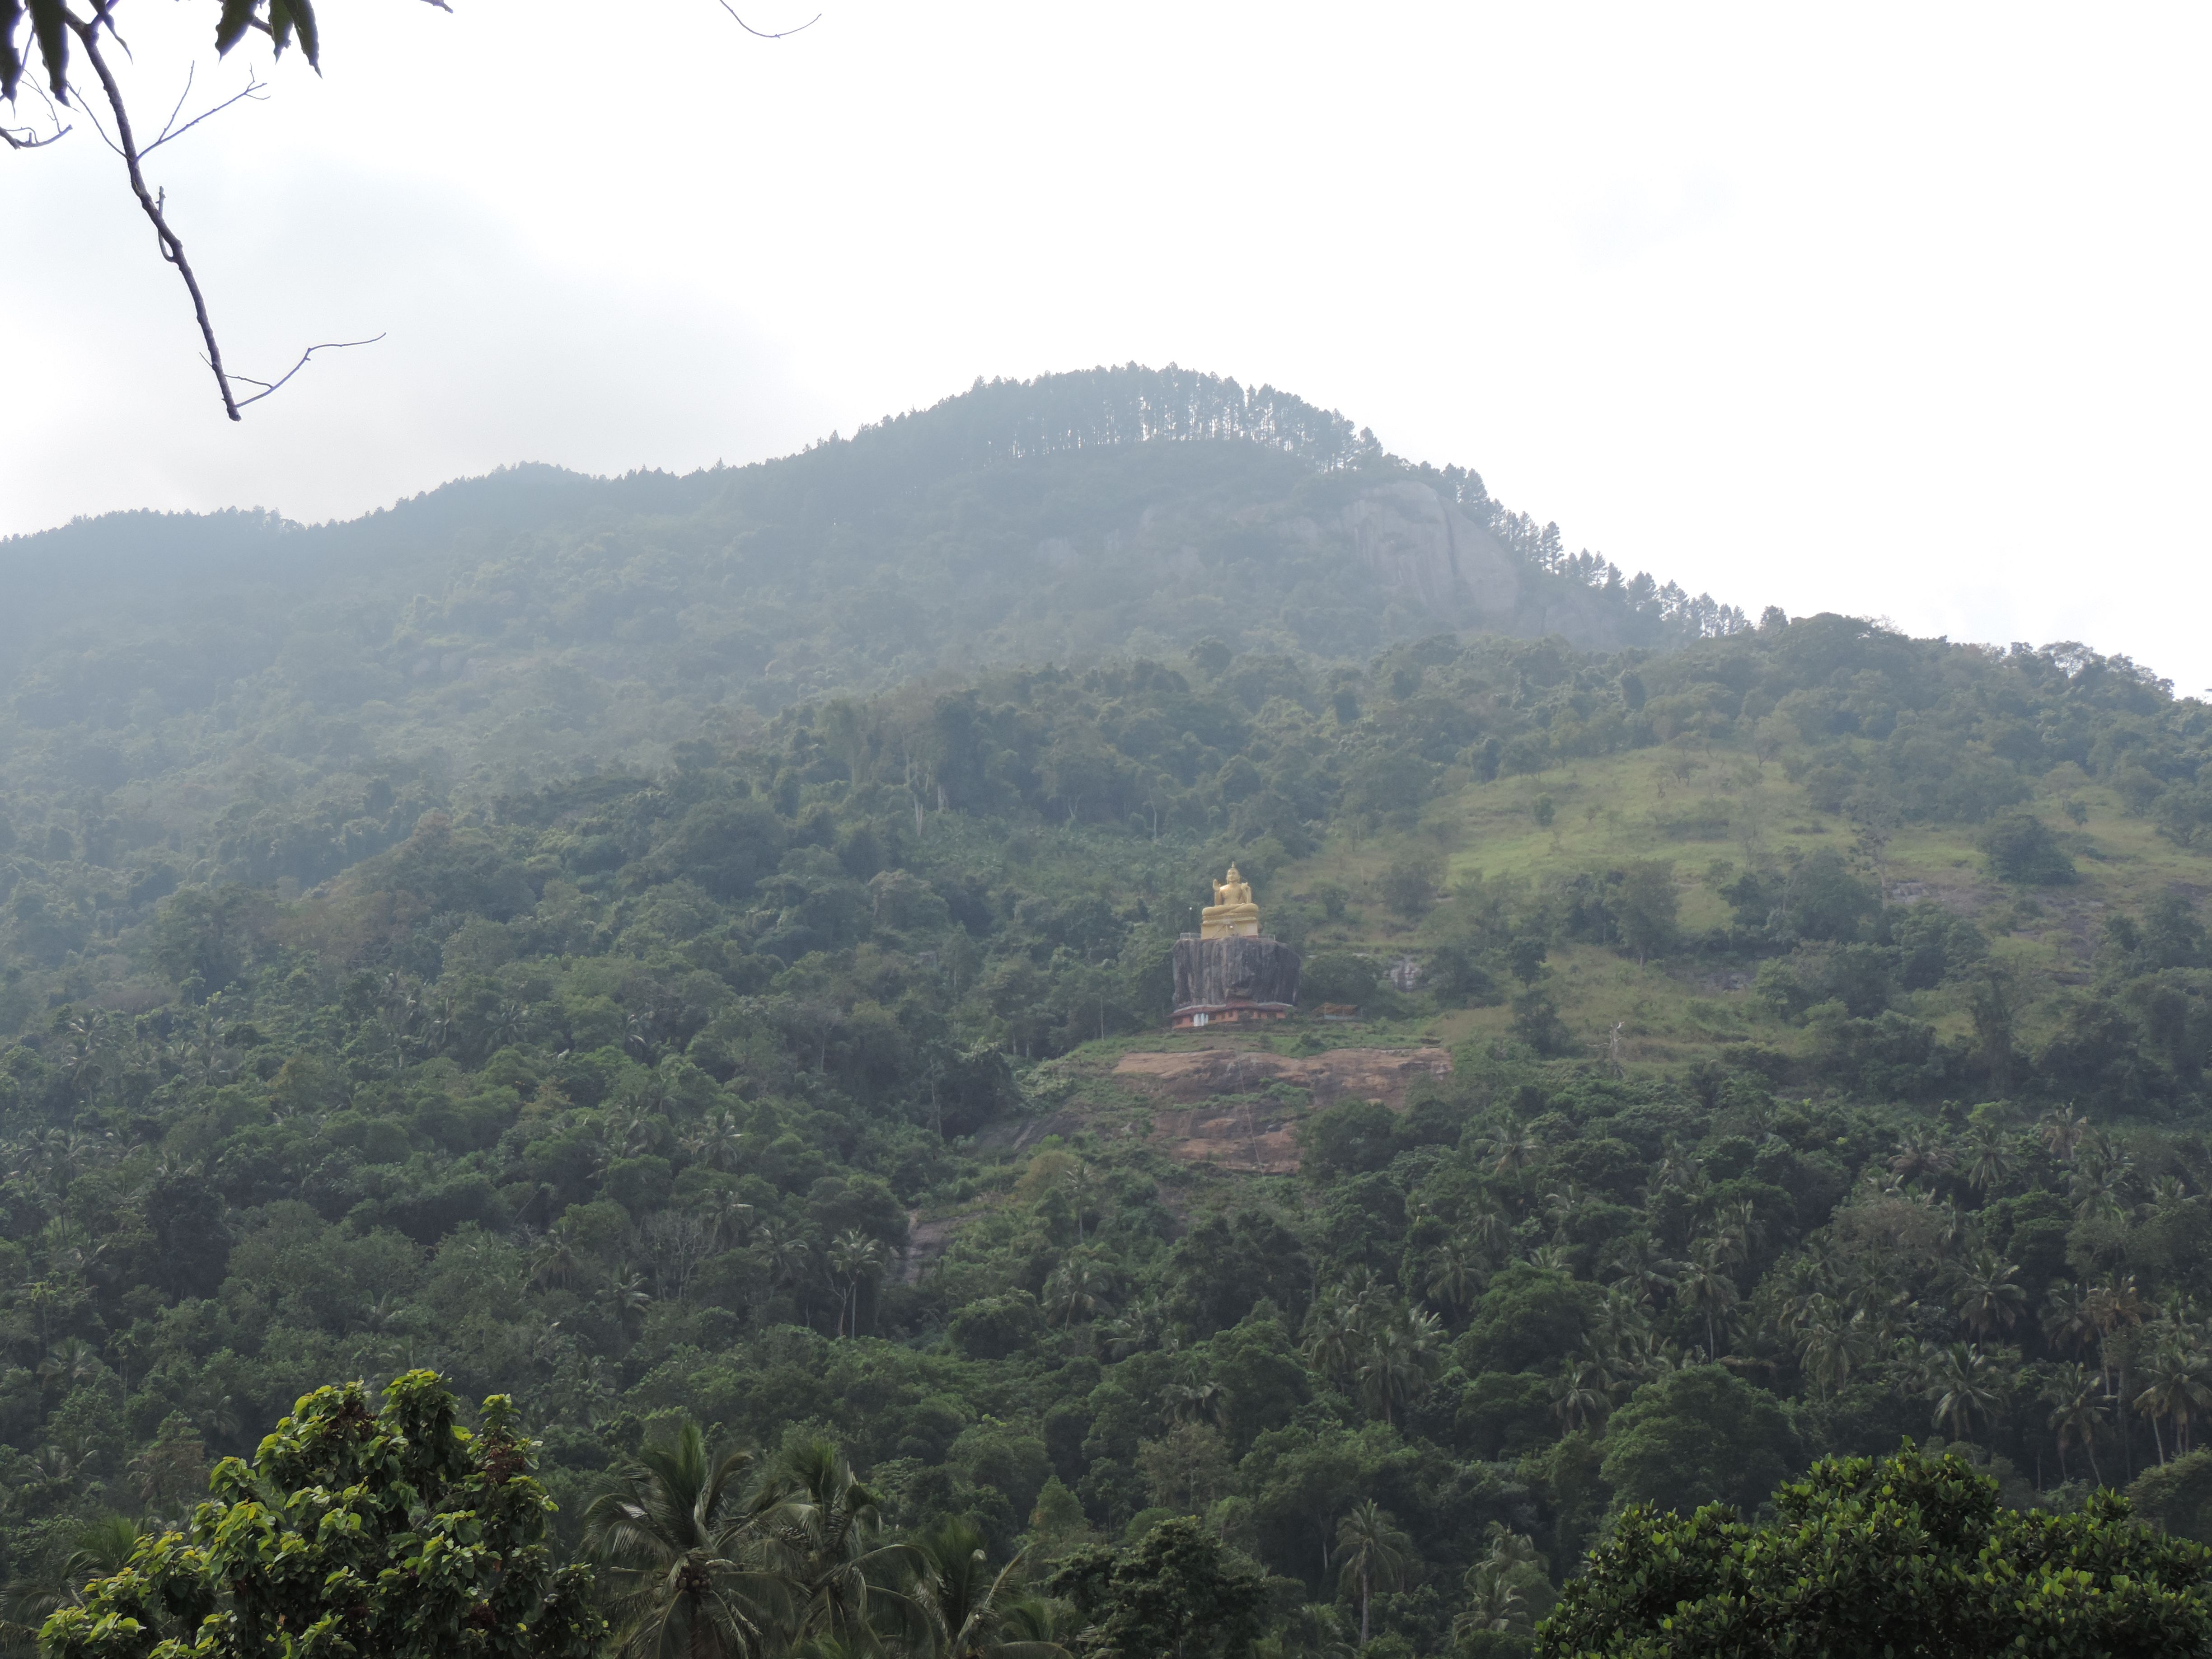 A new Buddha statue up in the hills - 1 km from the temple.